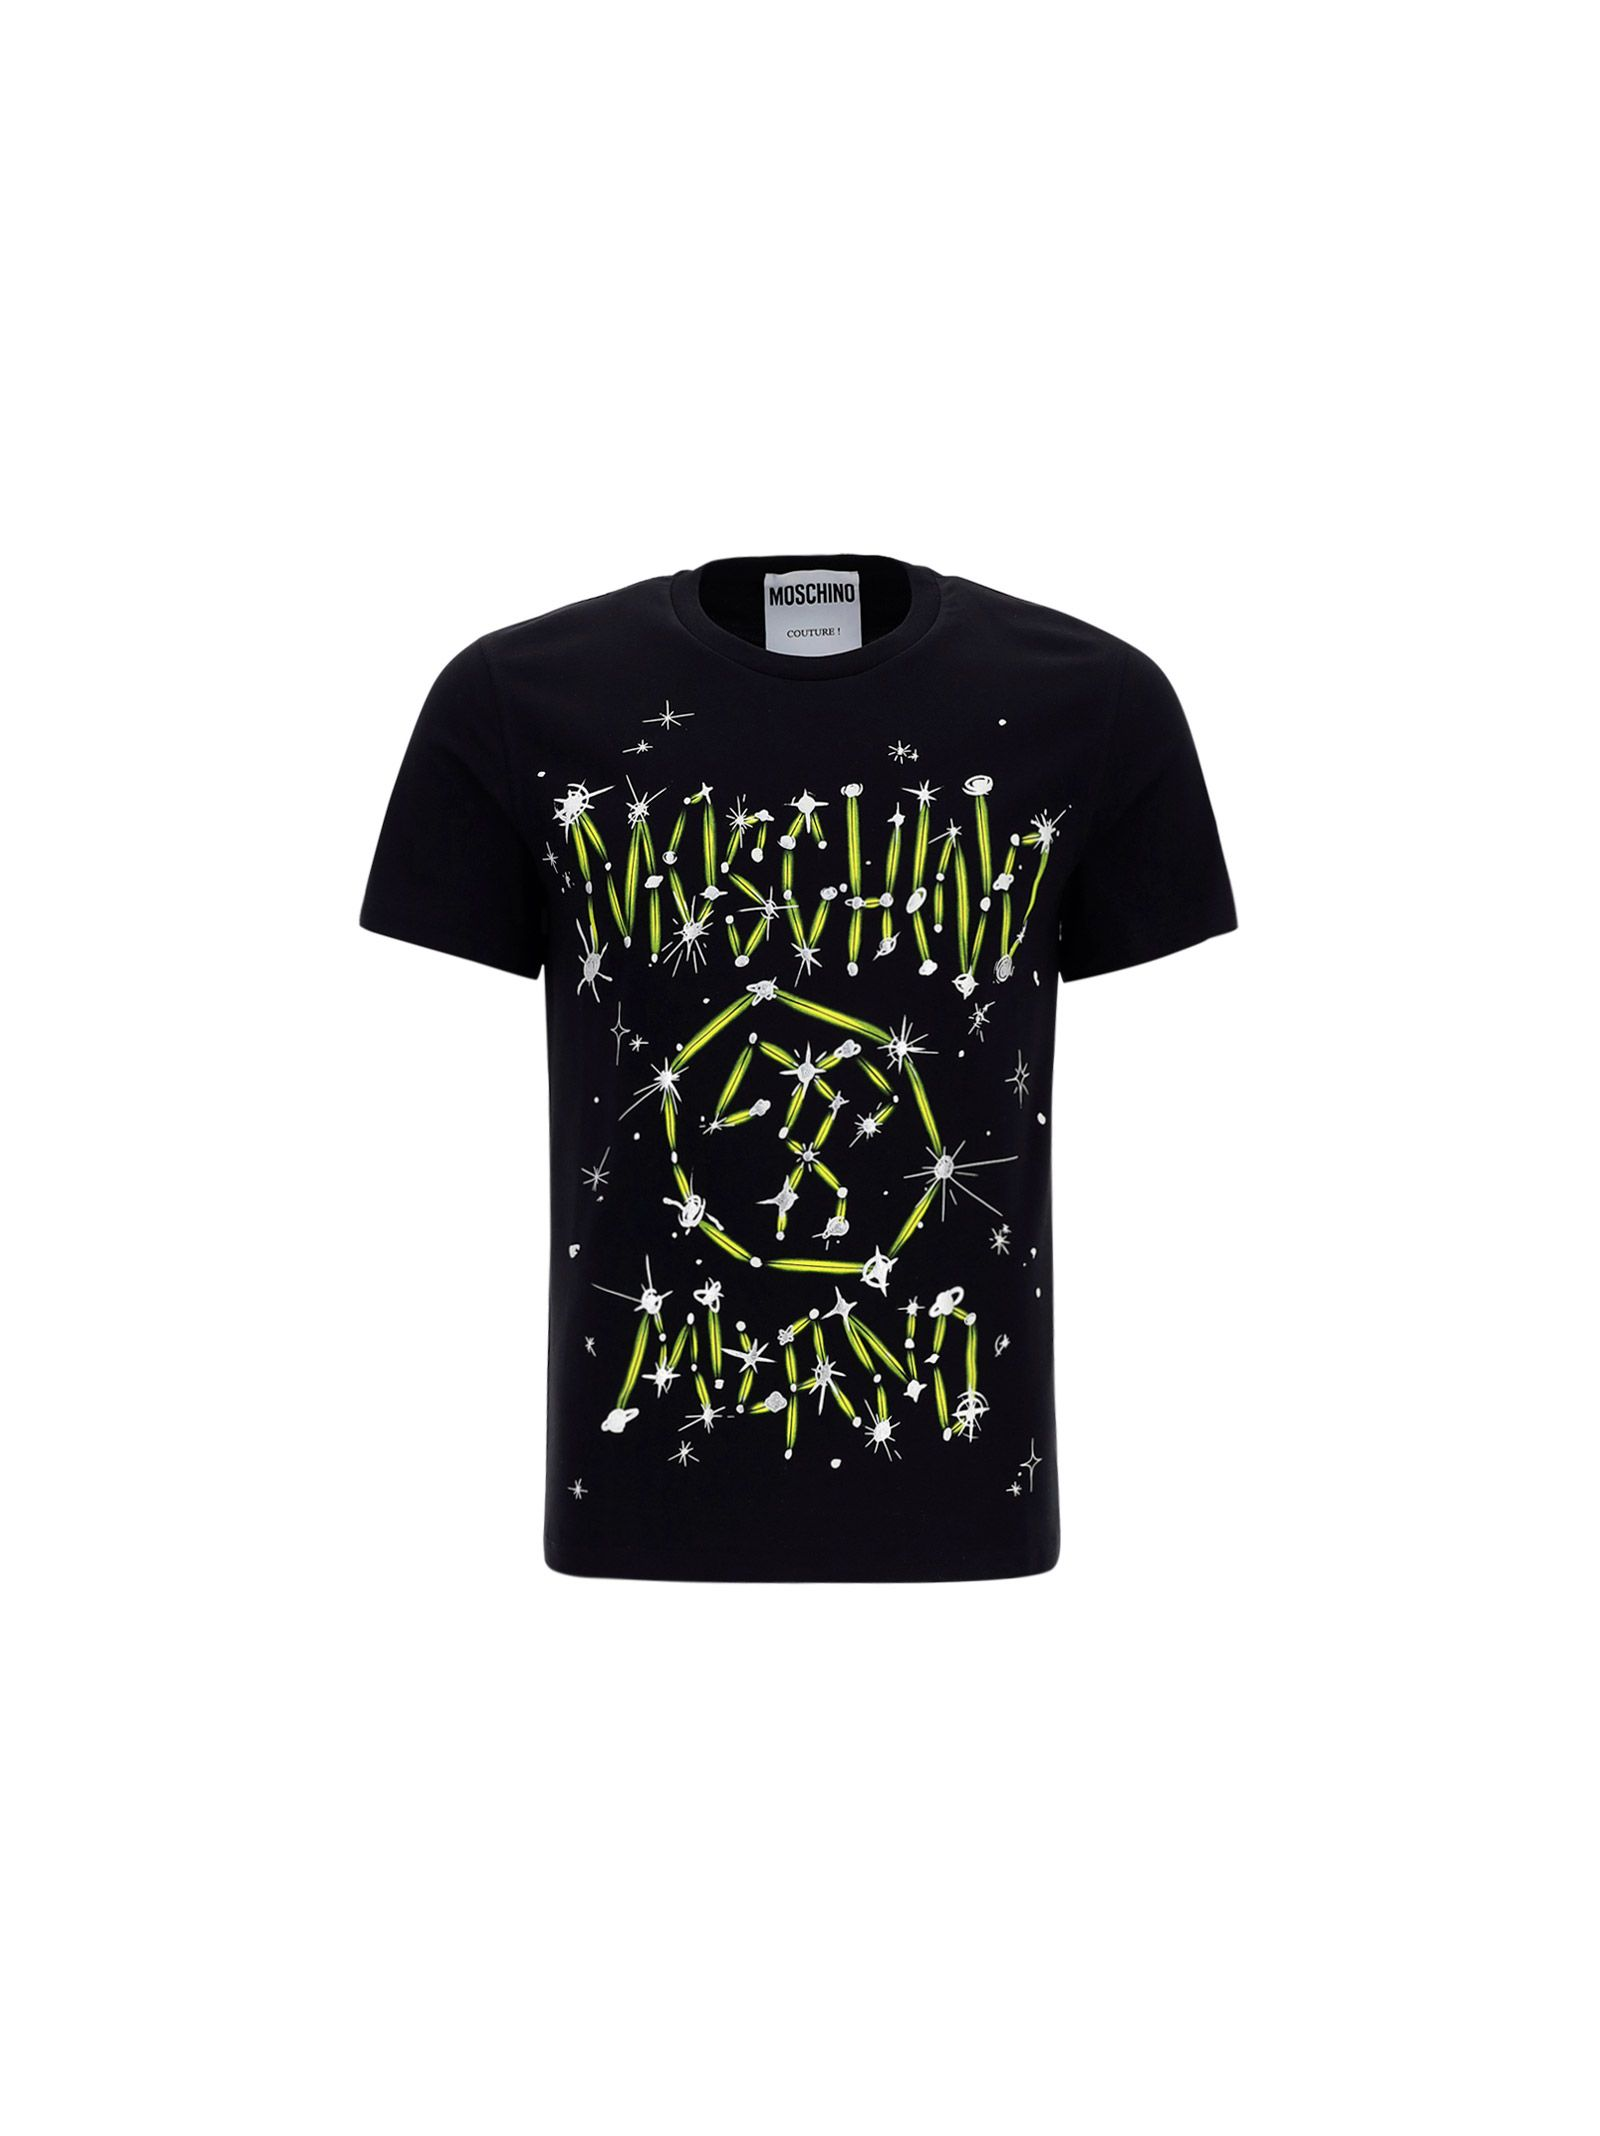 Moschino MOSCHINO MEN'S BLACK OTHER MATERIALS T-SHIRT